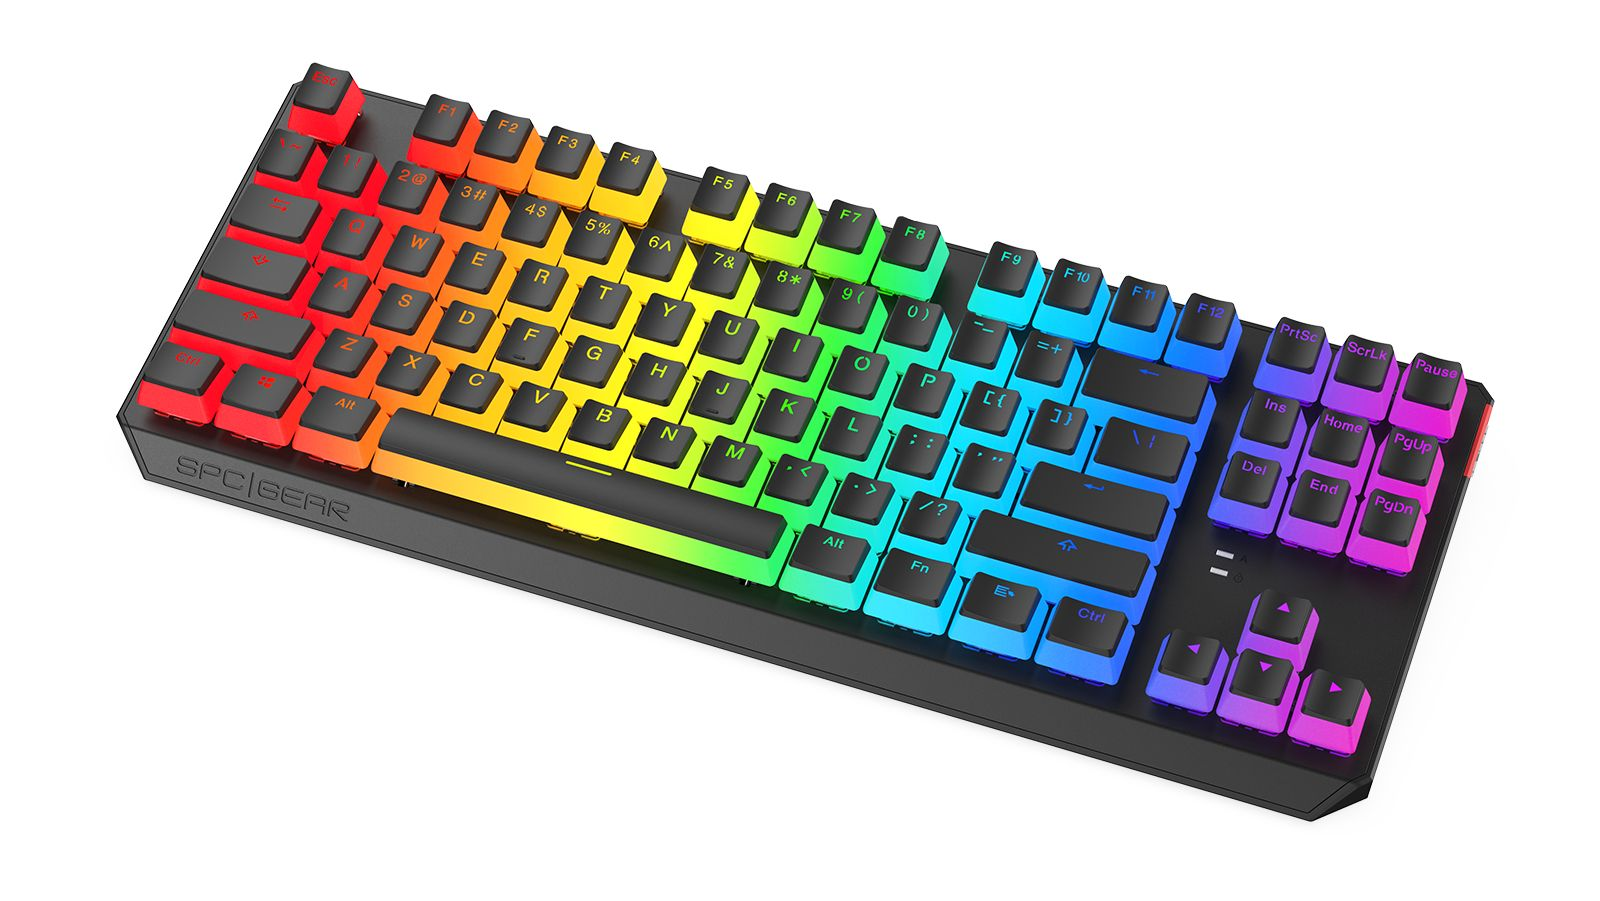 SPC Gear GK630 Pudding Tournament Kailh Red RGB keyboard Black ENG (SPG076)